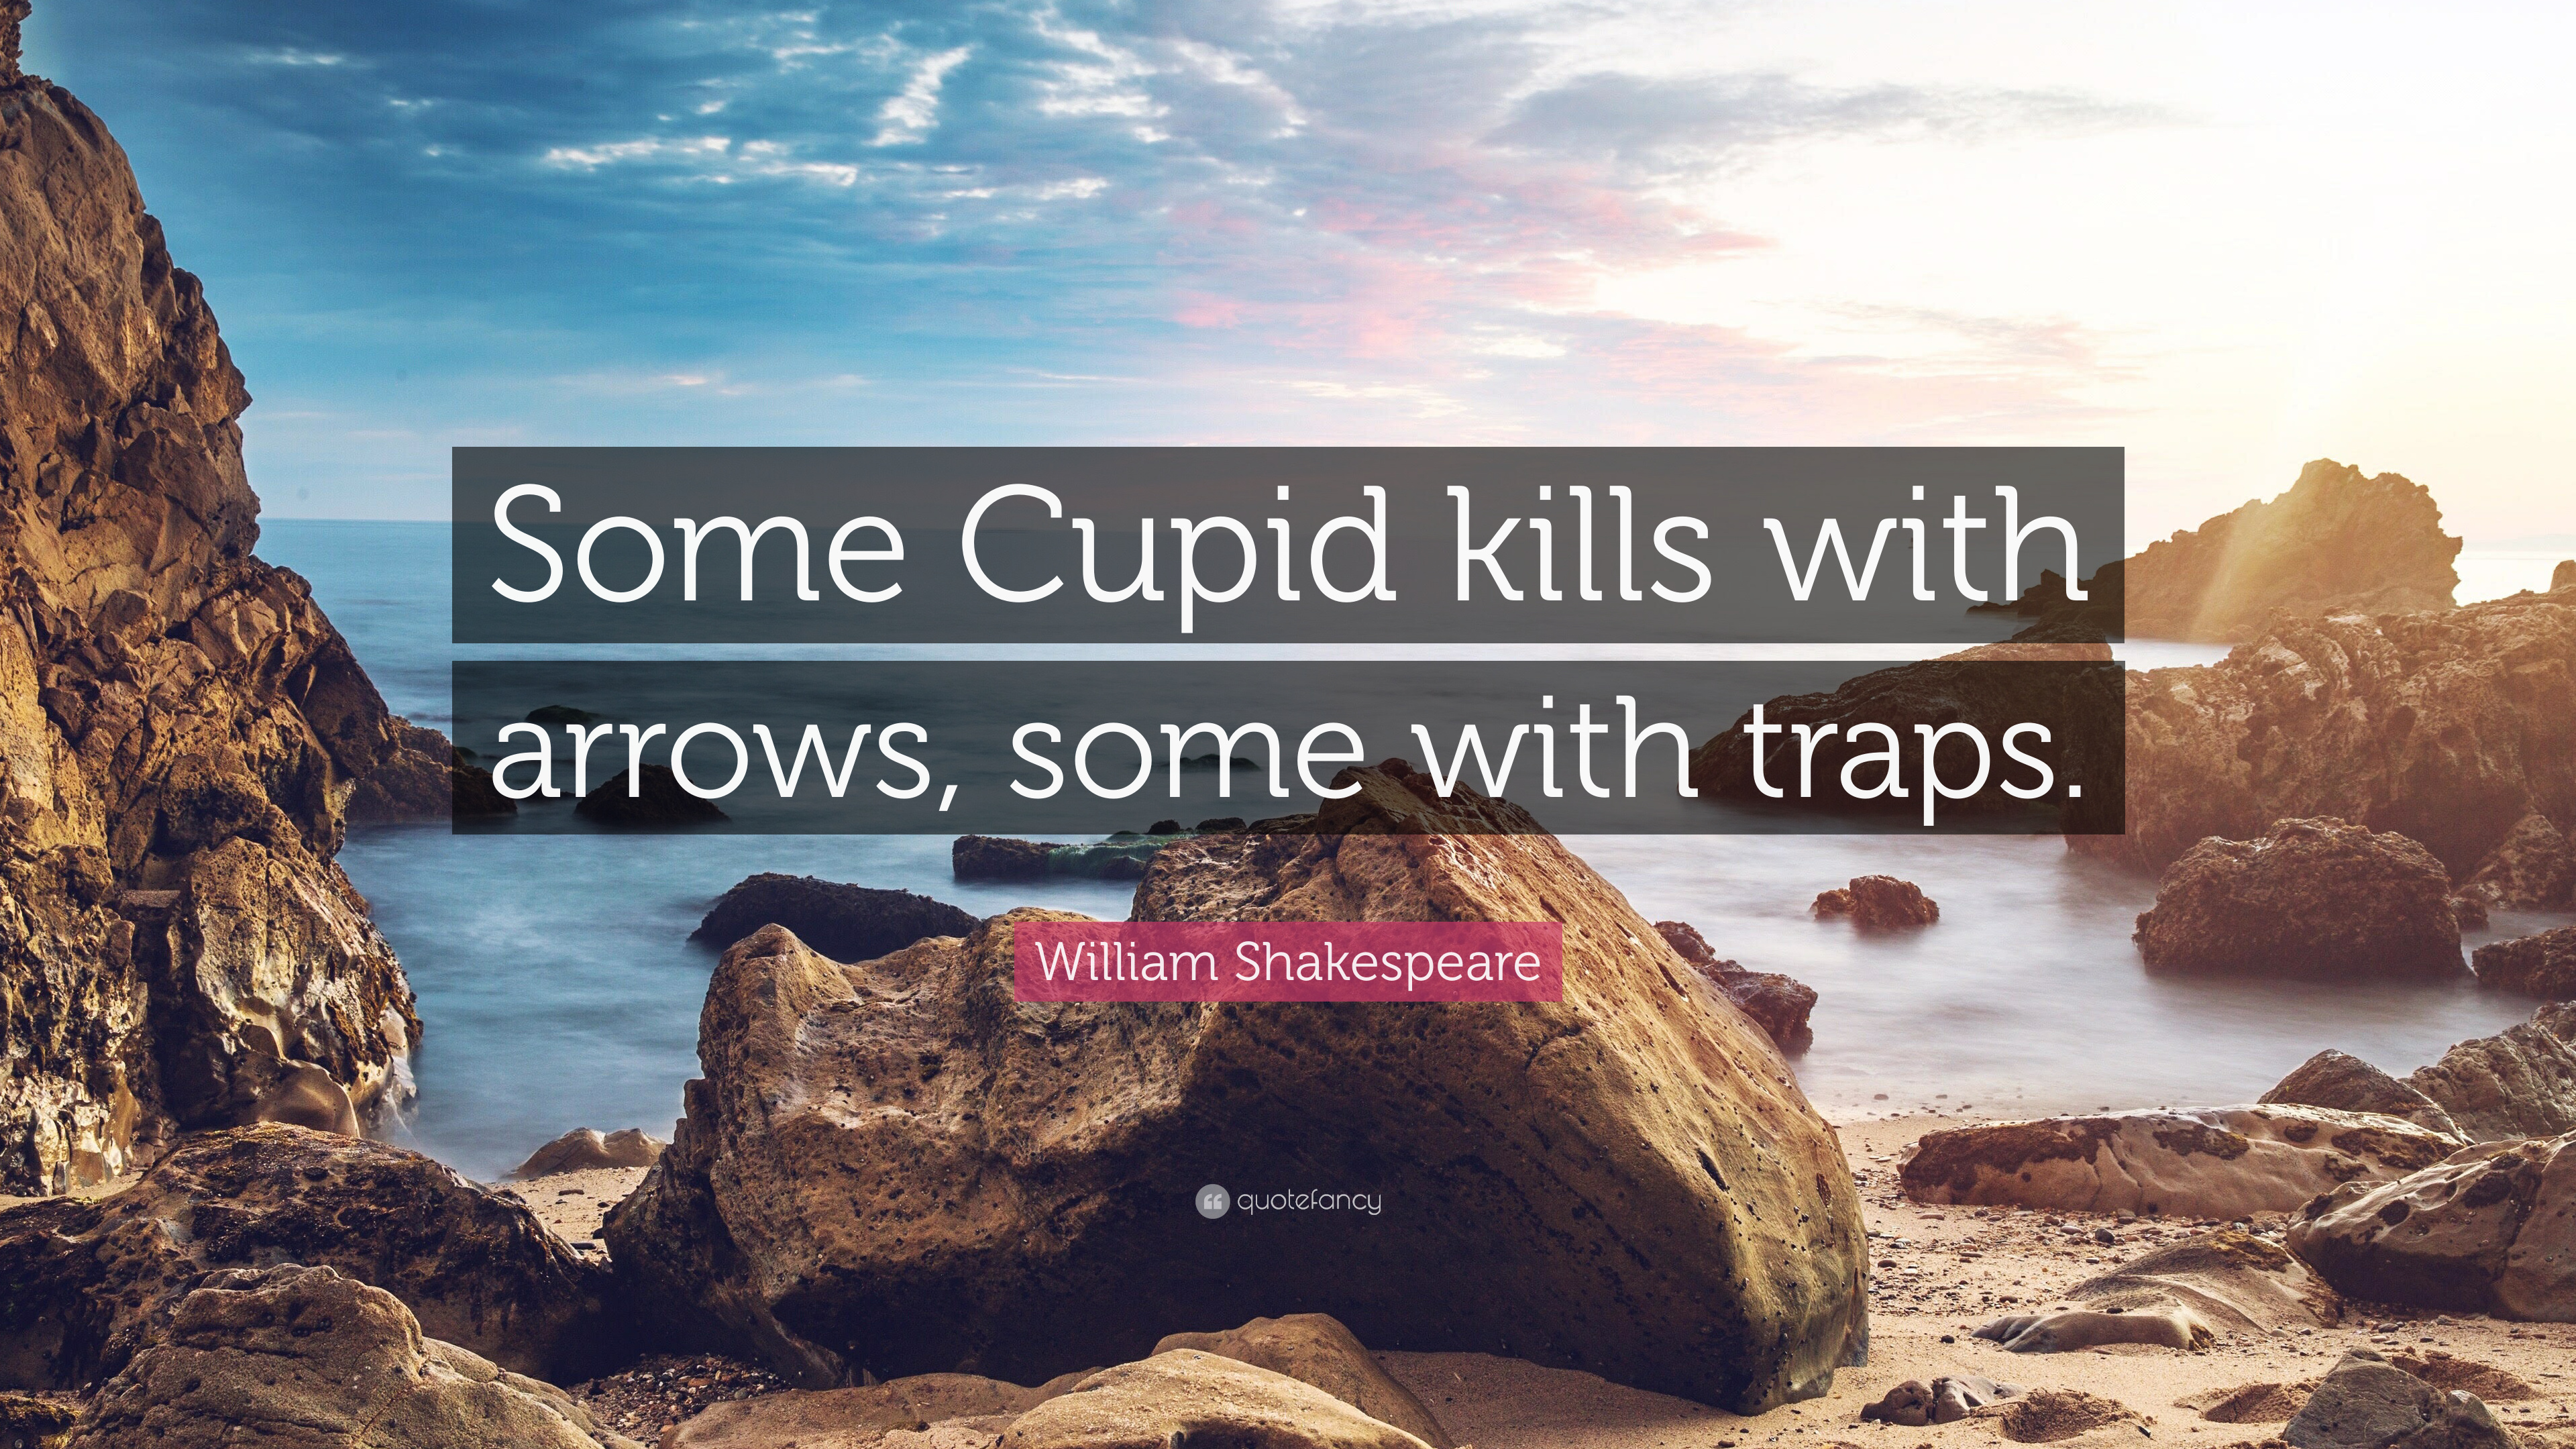 some cupids kill with arrows